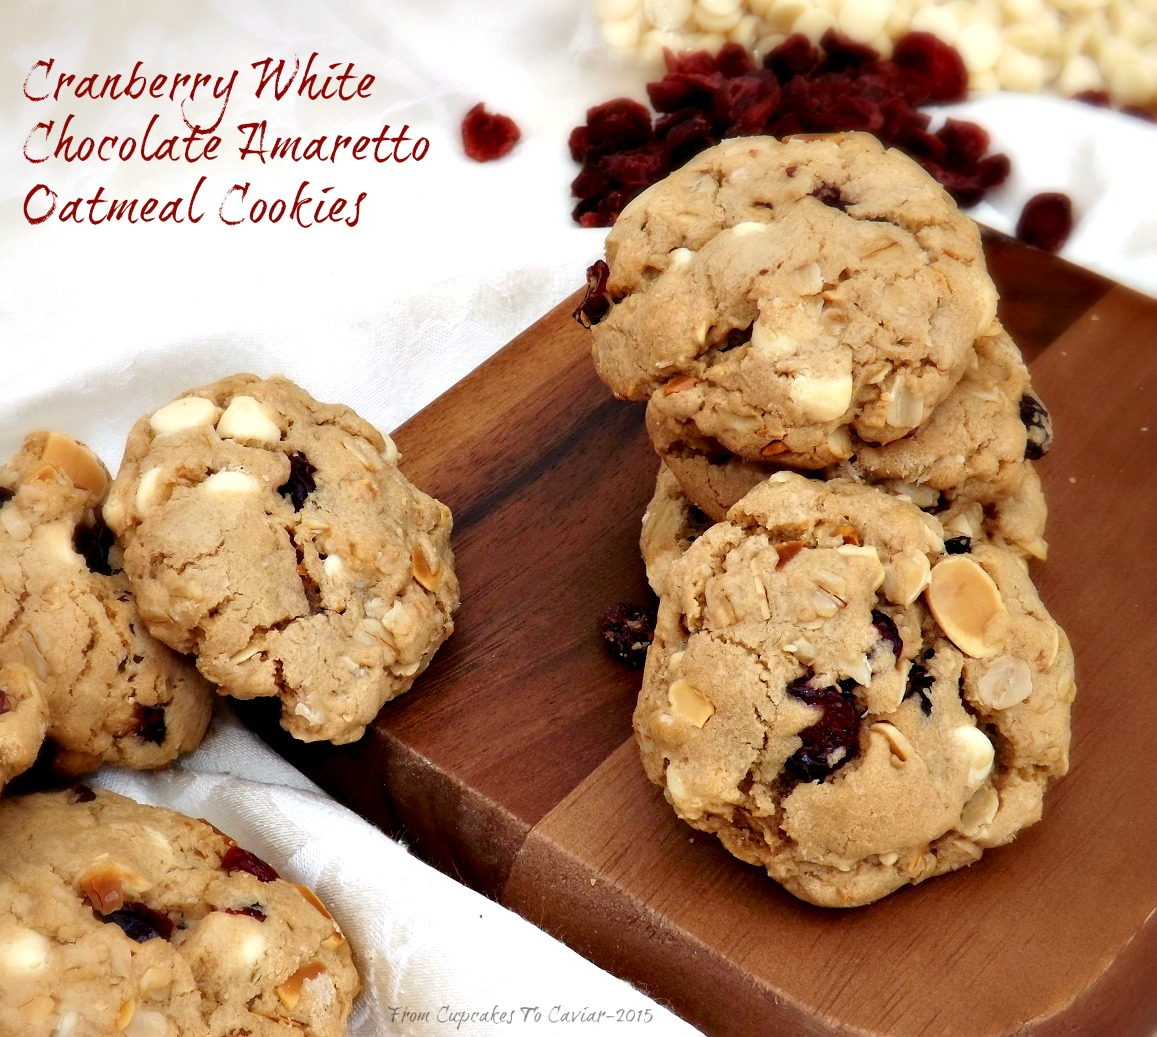 Cranberry White Chocolate Amaretto Oatmeal Cookies